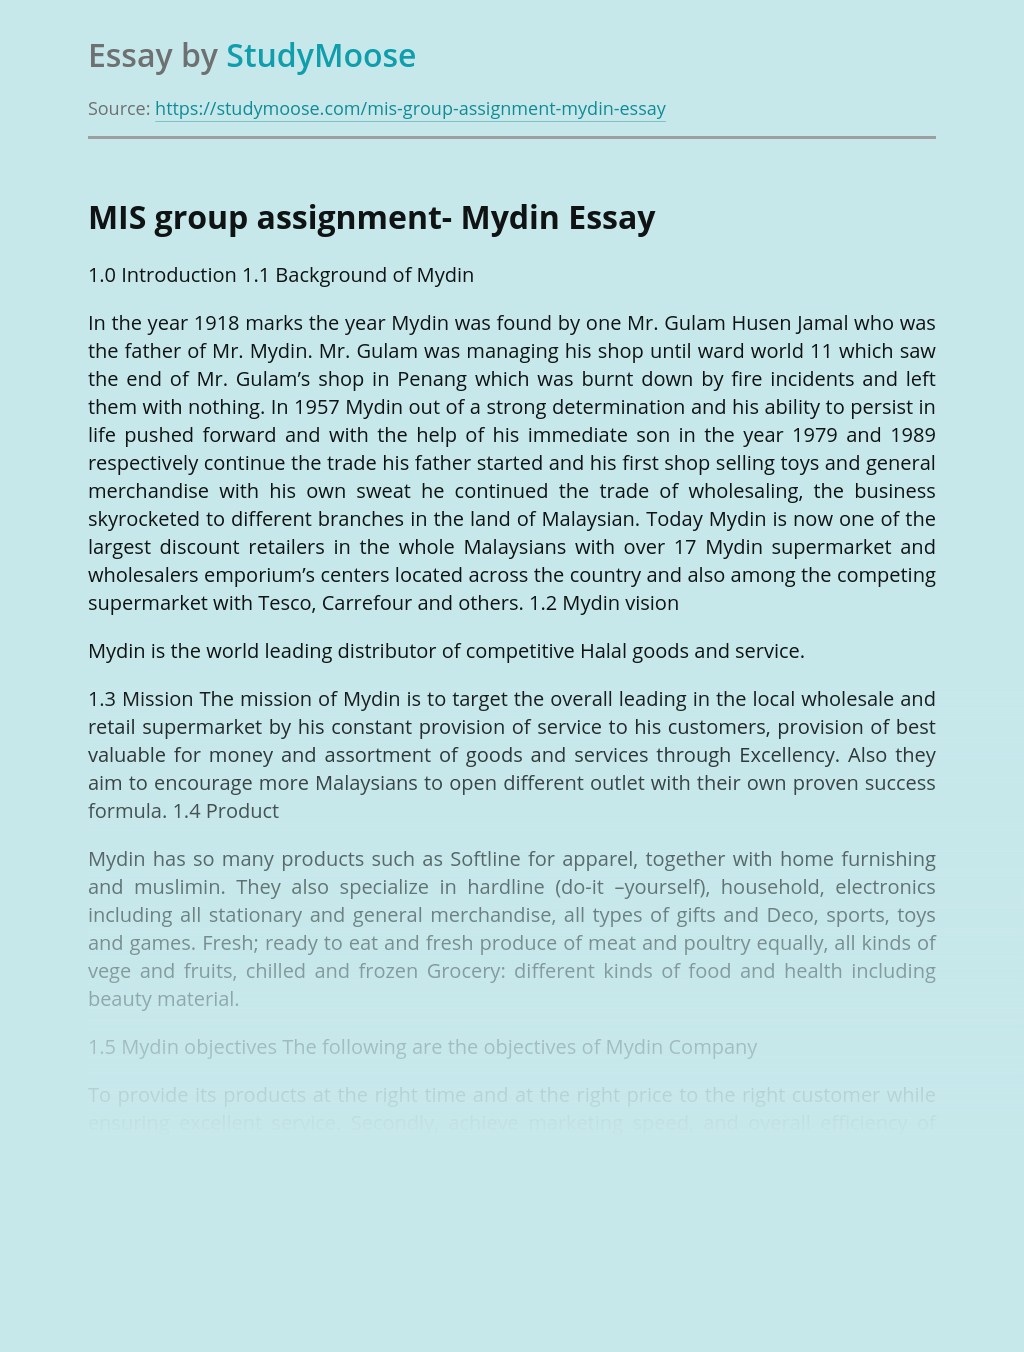 MIS Group Assignment - Mydin